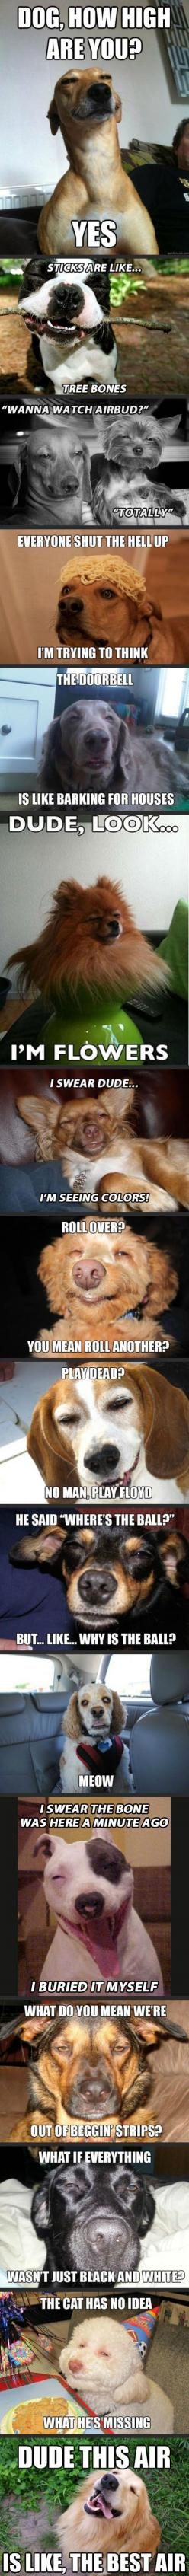 "Hahahahahaha omg. ""Roll over? You mean roll another?"" Looks just like a blonde lulu!!!!: Stoned Dogs, Stoner Dogs, High Dogs, Dogs On Drugs, Funny Stuff, Funny Animal, So Funny"